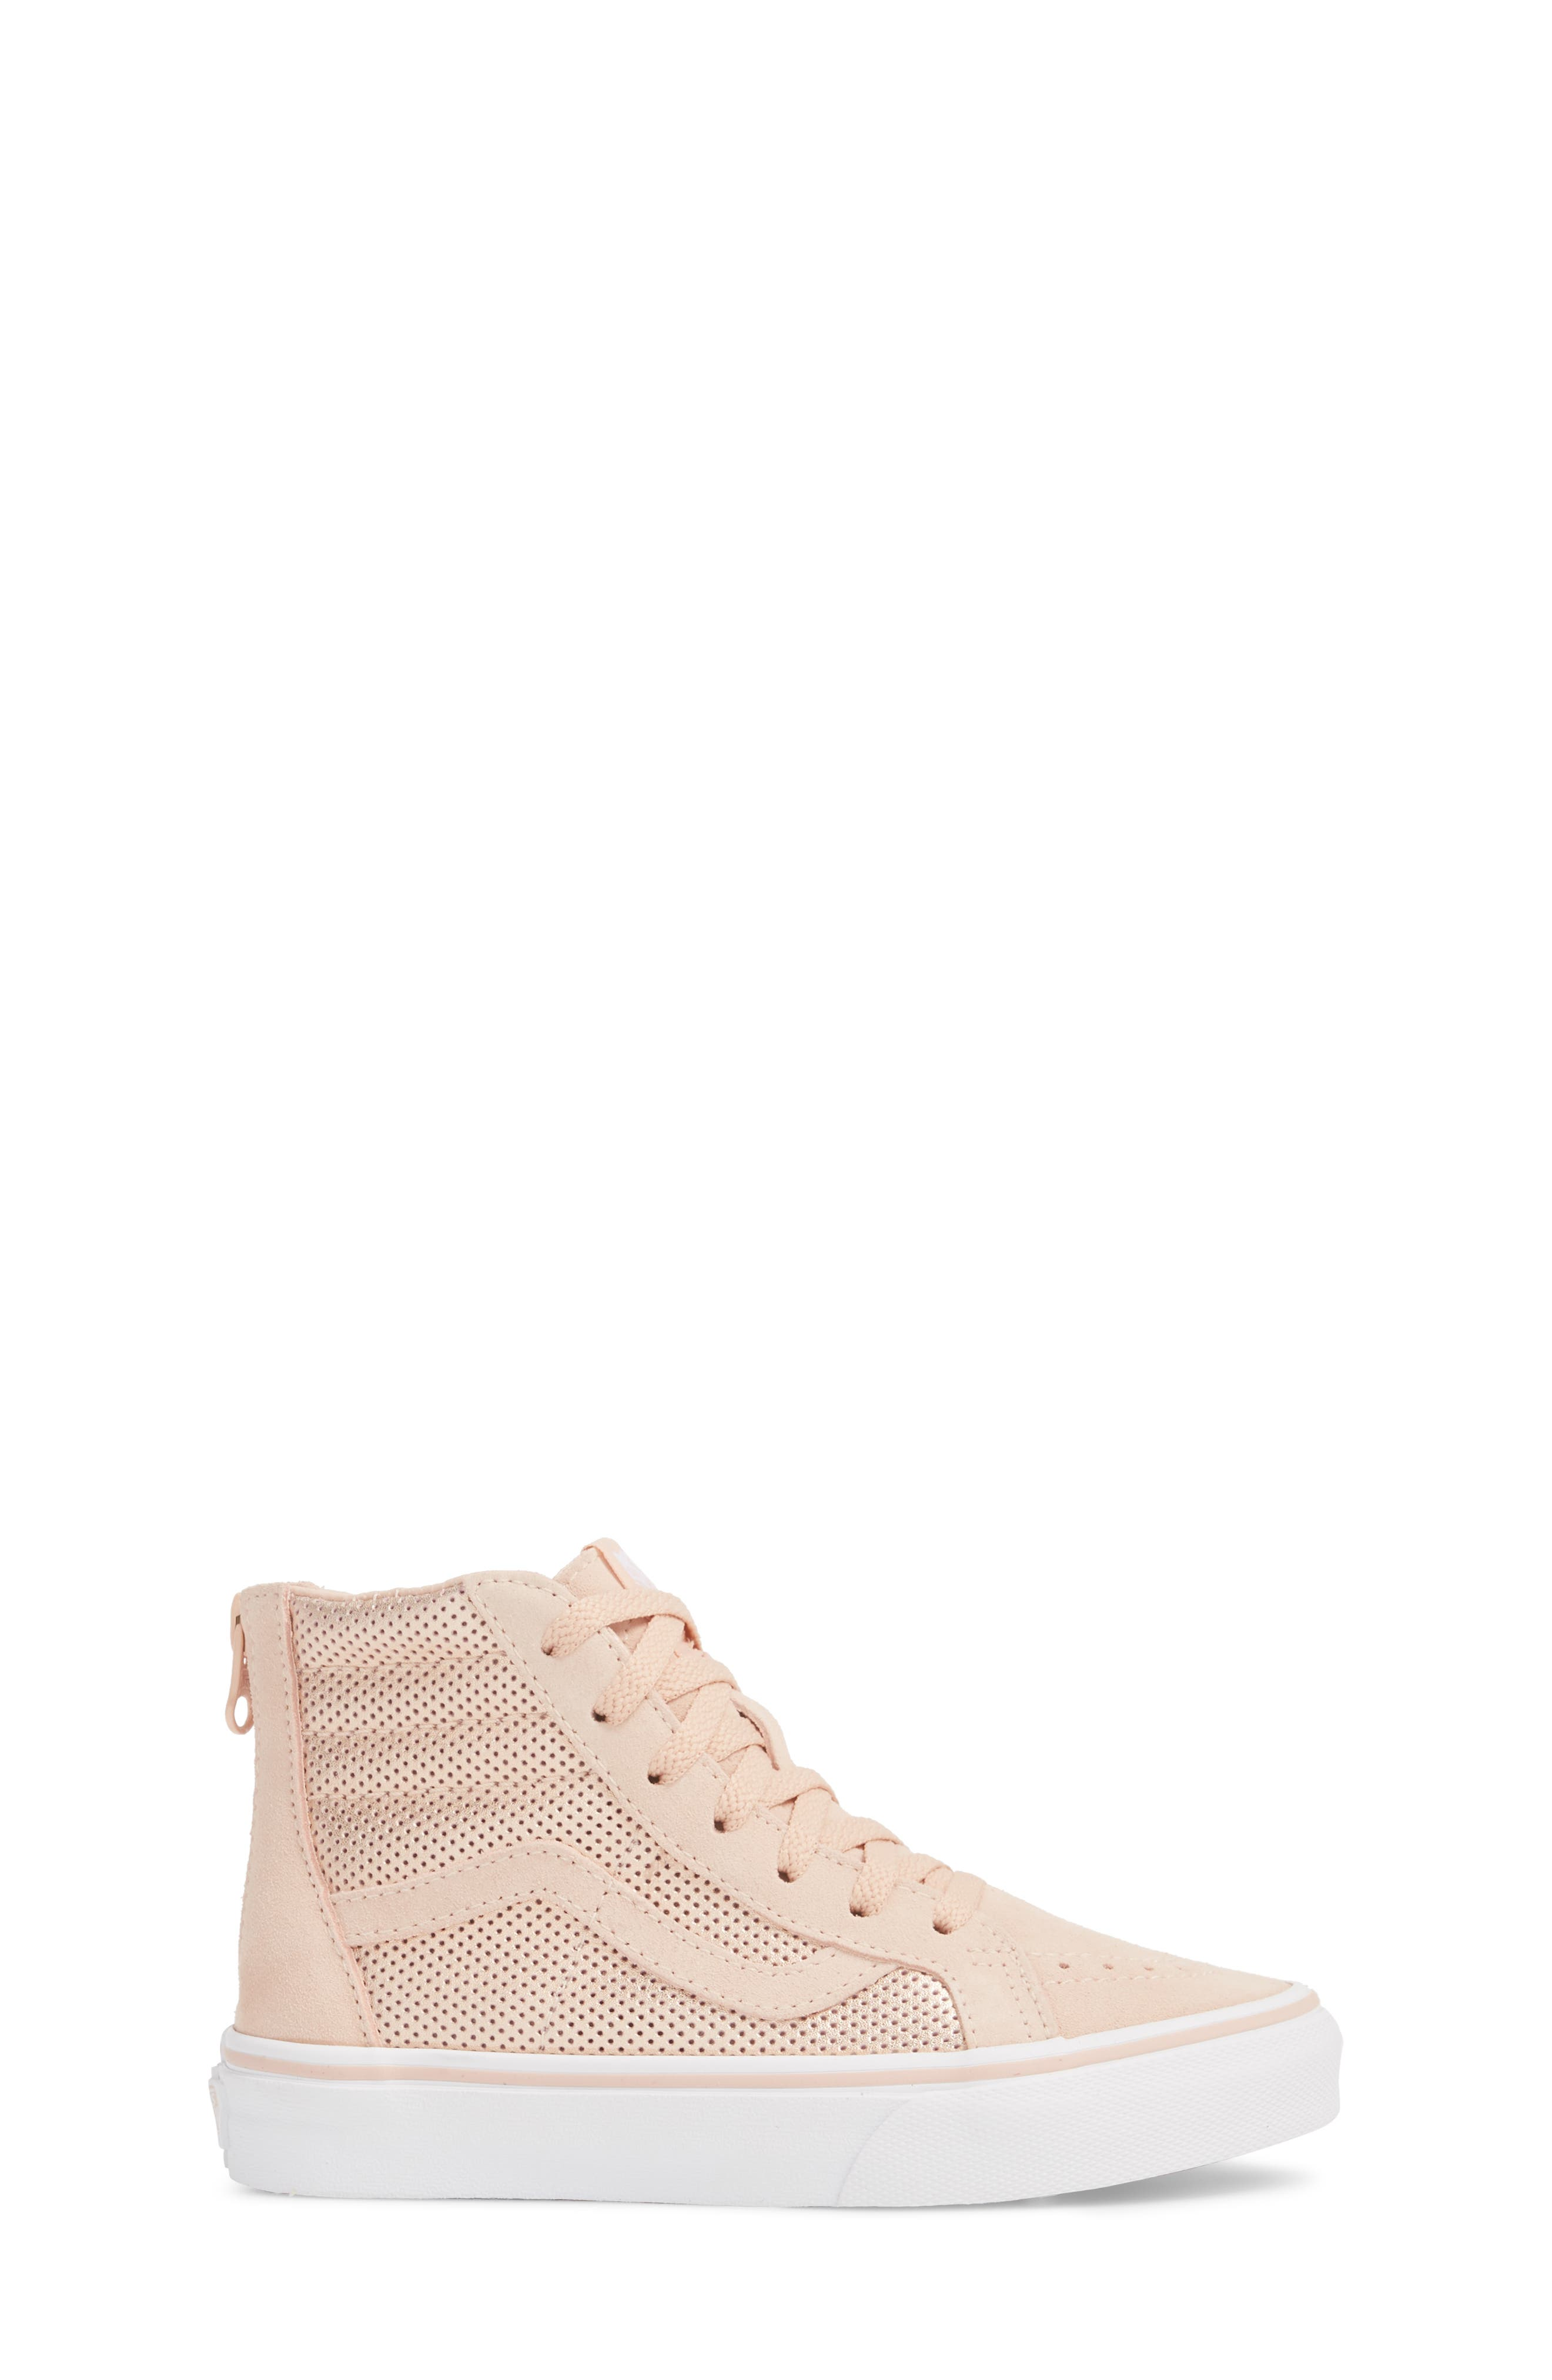 SK8-Hi Zip Sneaker,                             Alternate thumbnail 3, color,                             ROSE GOLD SUEDE LEATHER